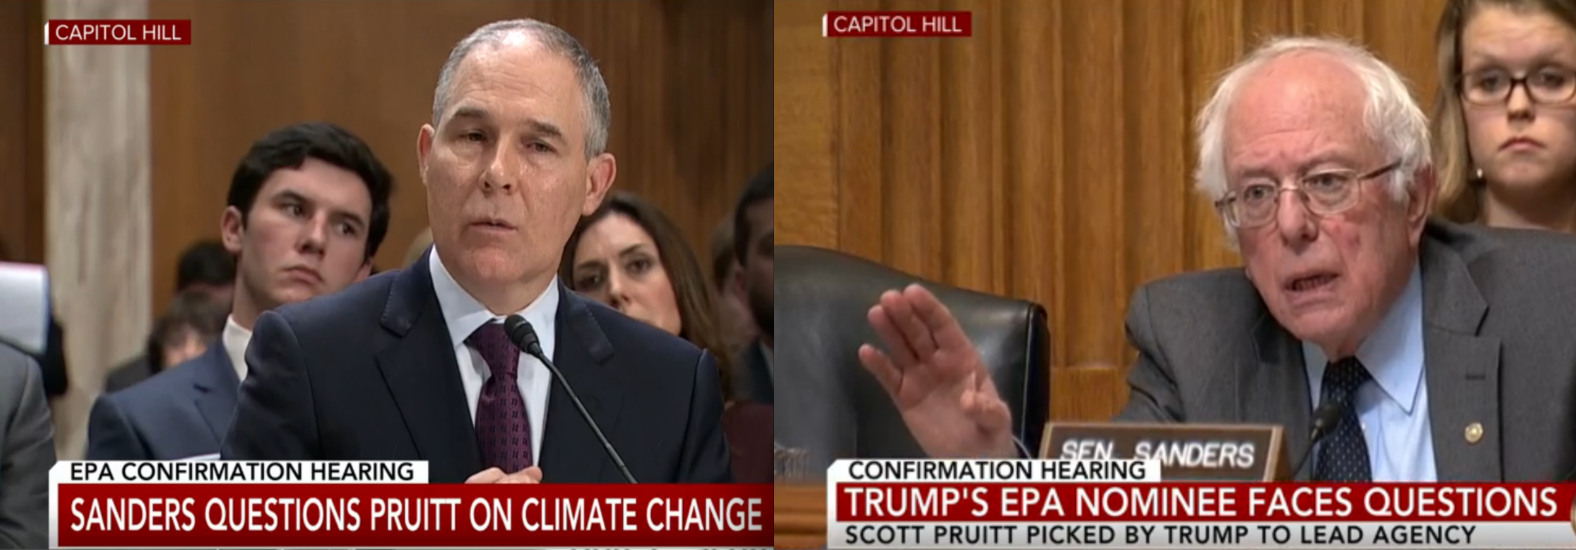 Video: Bernie Sanders Blasts Trump's EPA Pick on Climate Change in Senate Confirmation Hearing